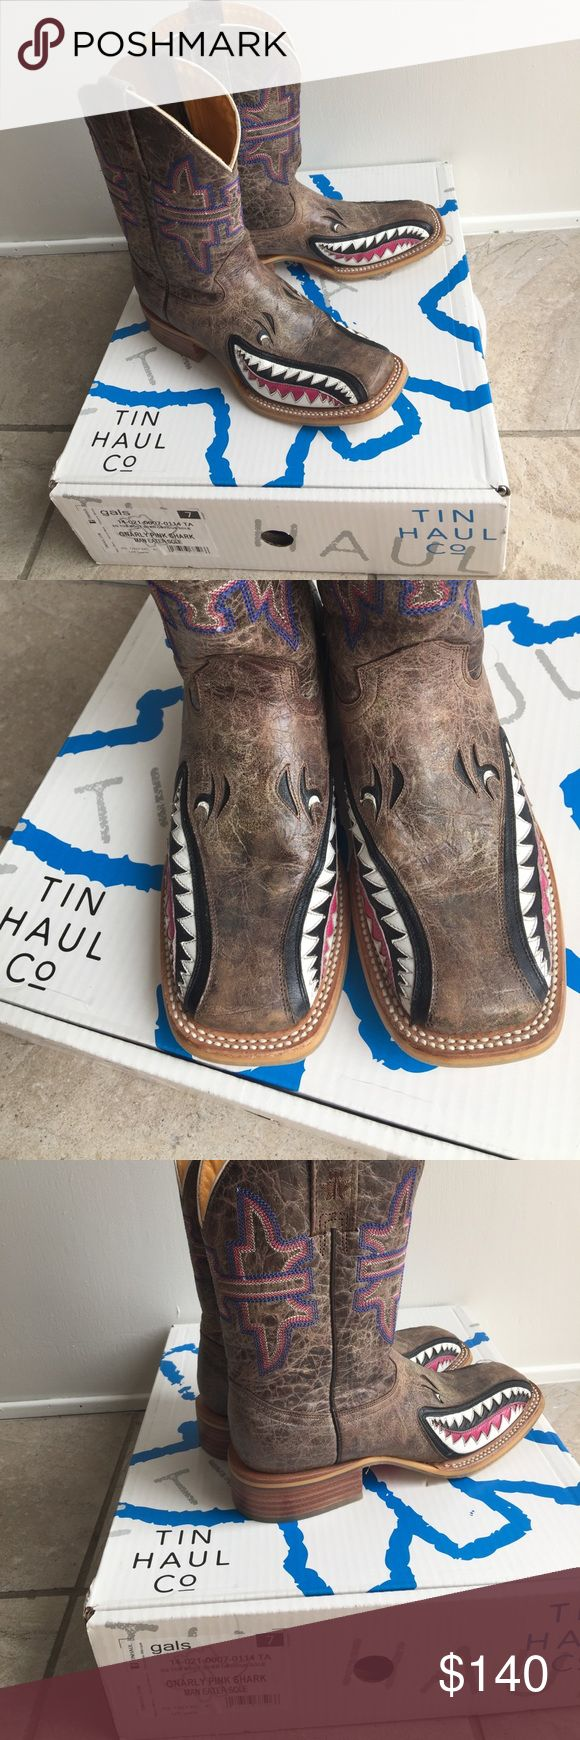 Women's Tin Haul Co cowboy boots Tin Haul Gnarly Pink Shark Man Eater Sole size 7 Tin Haul Co Shoes Heeled Boots